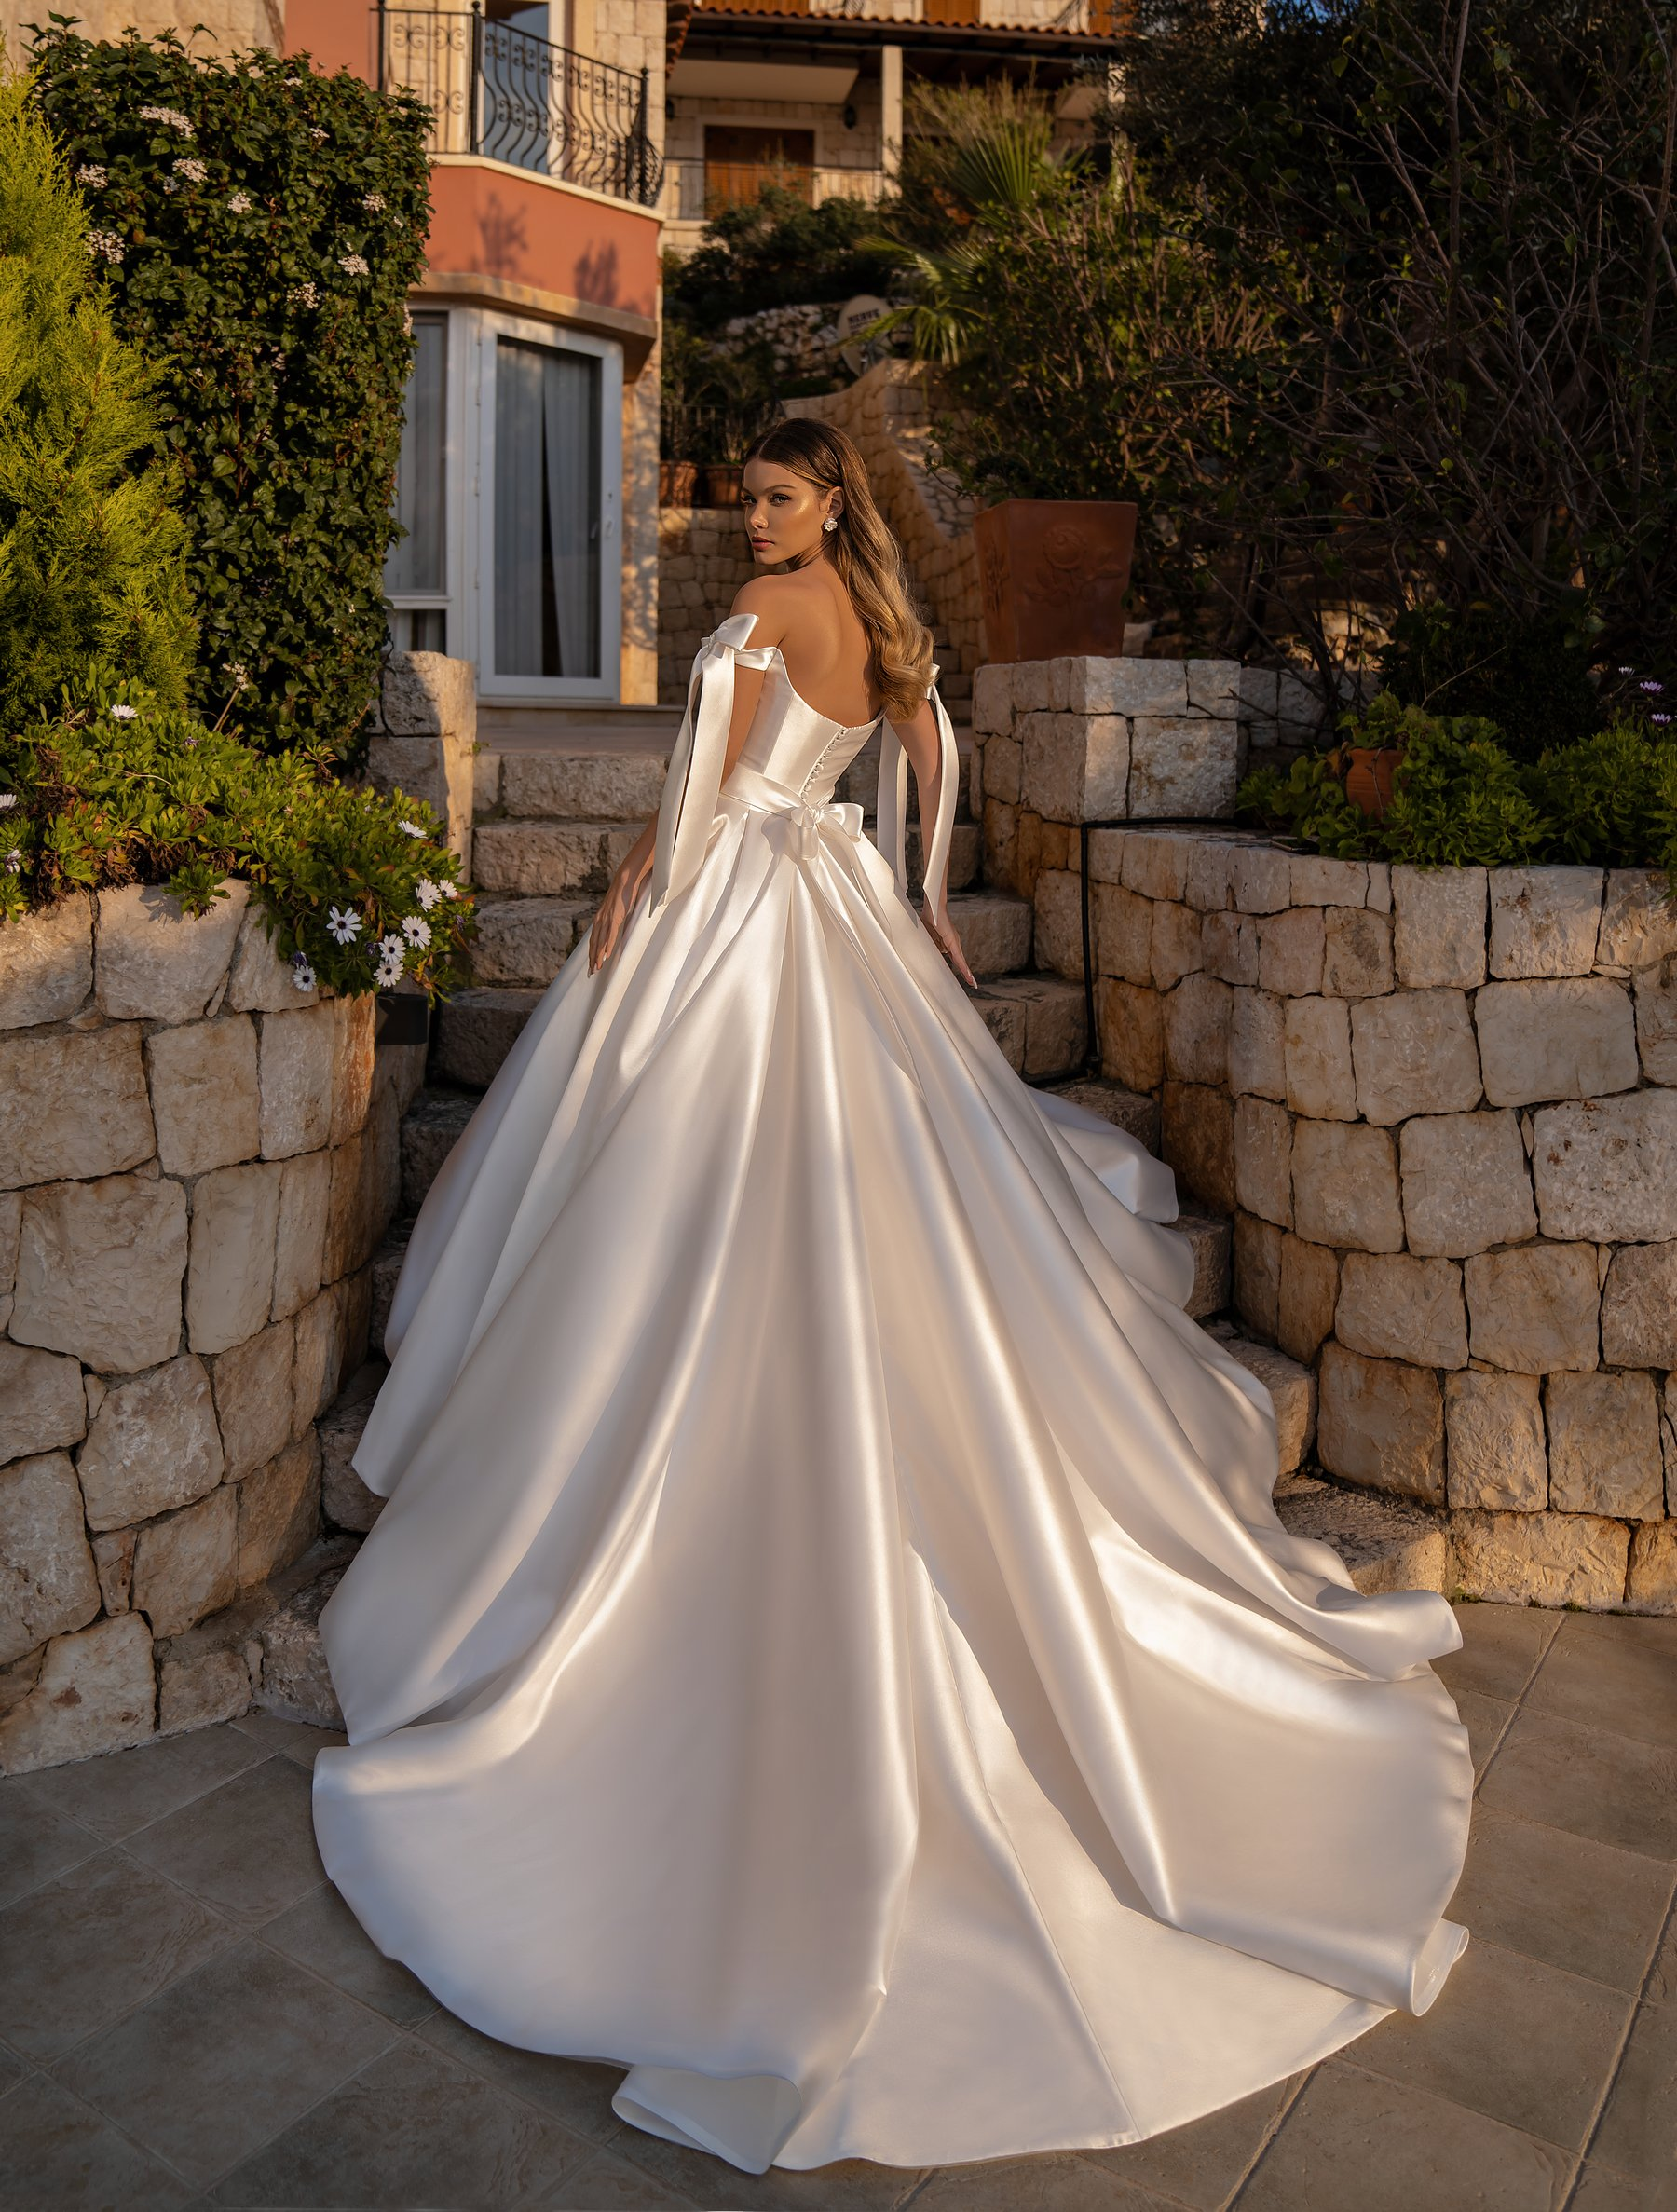 Wedding dress with a full skirt from Supernova-1